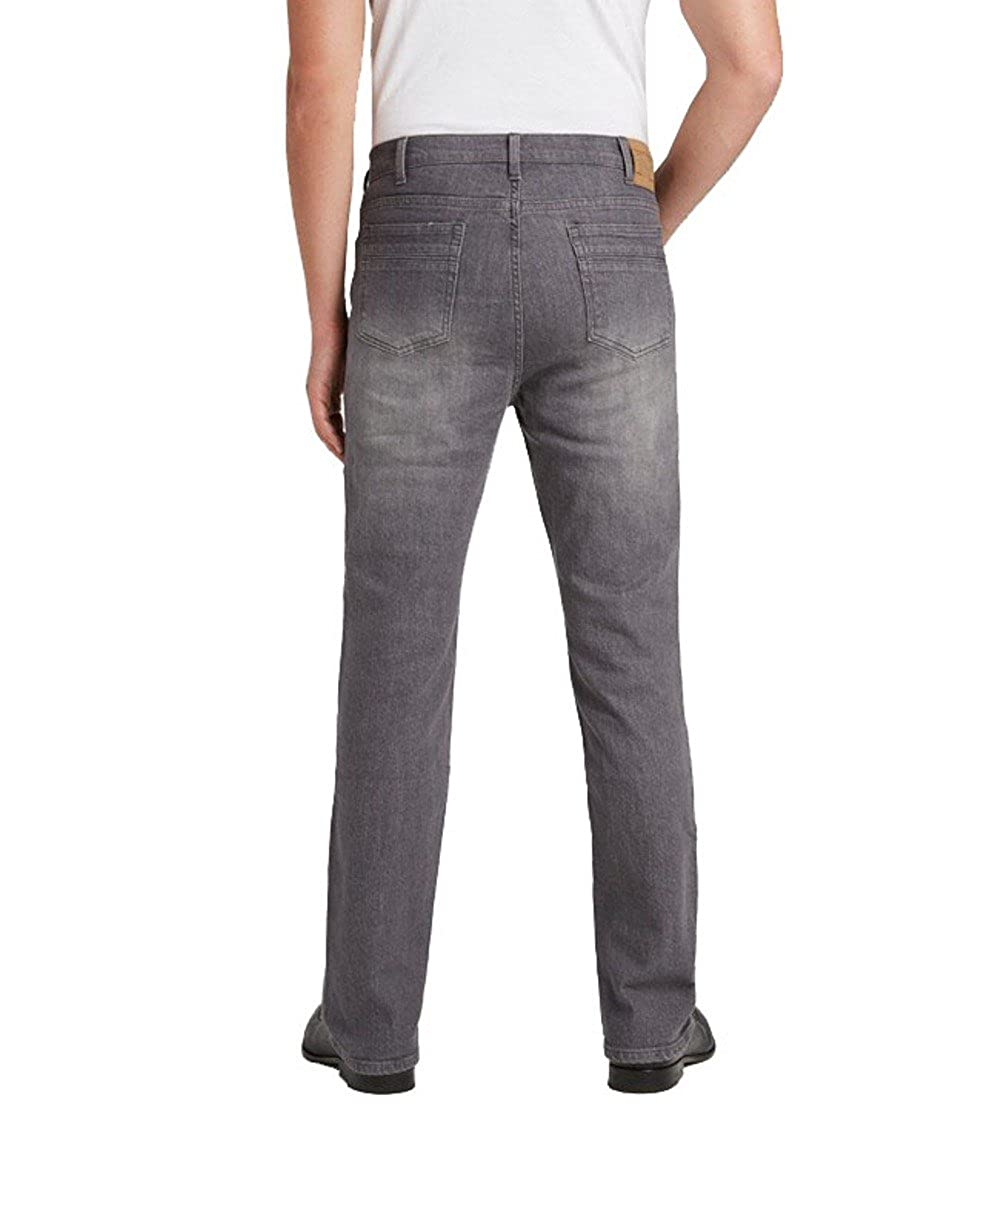 Grand River Grey Stretch Traditional Fit Jeans